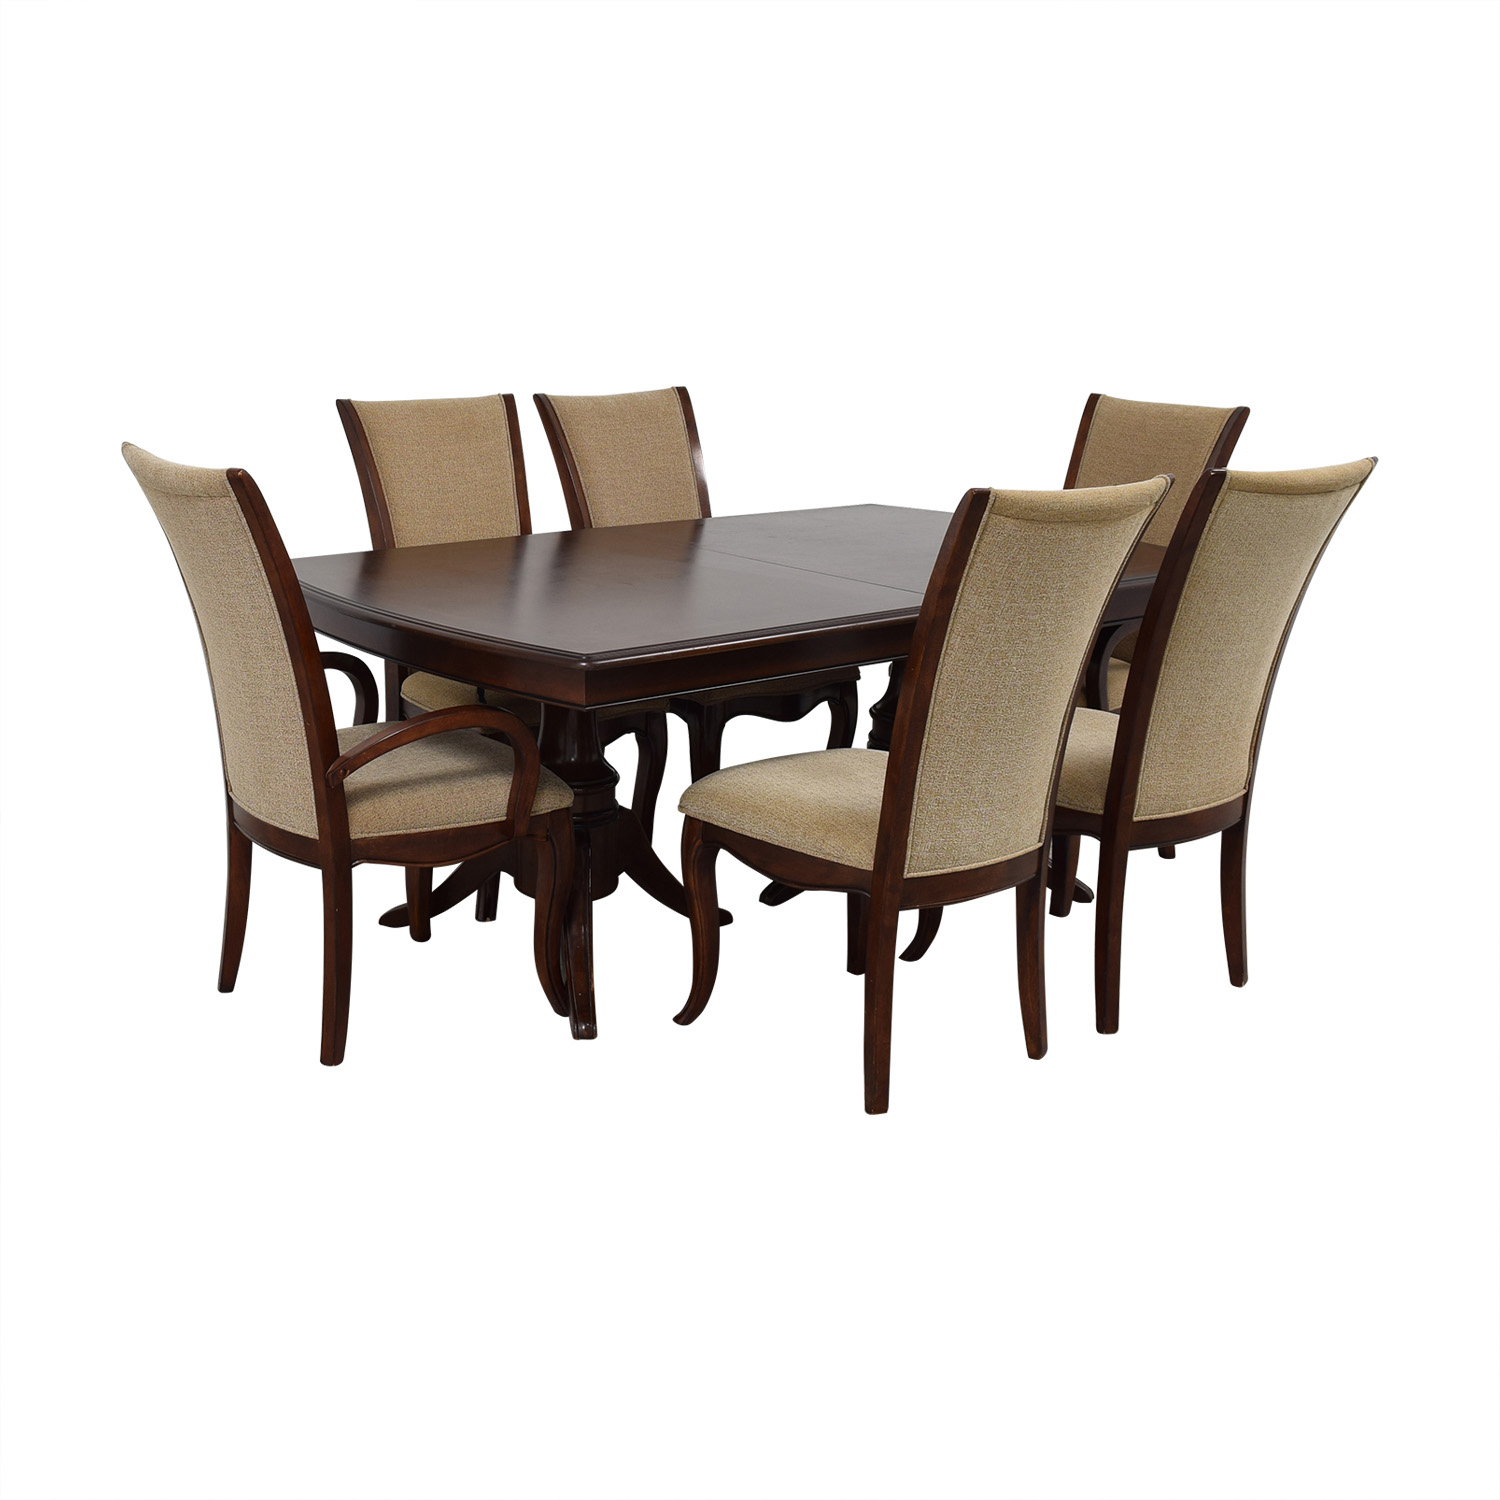 Raymour & Flanigan Raymour & Flanigan Extendable Dining Set with Padded Protector dimensions